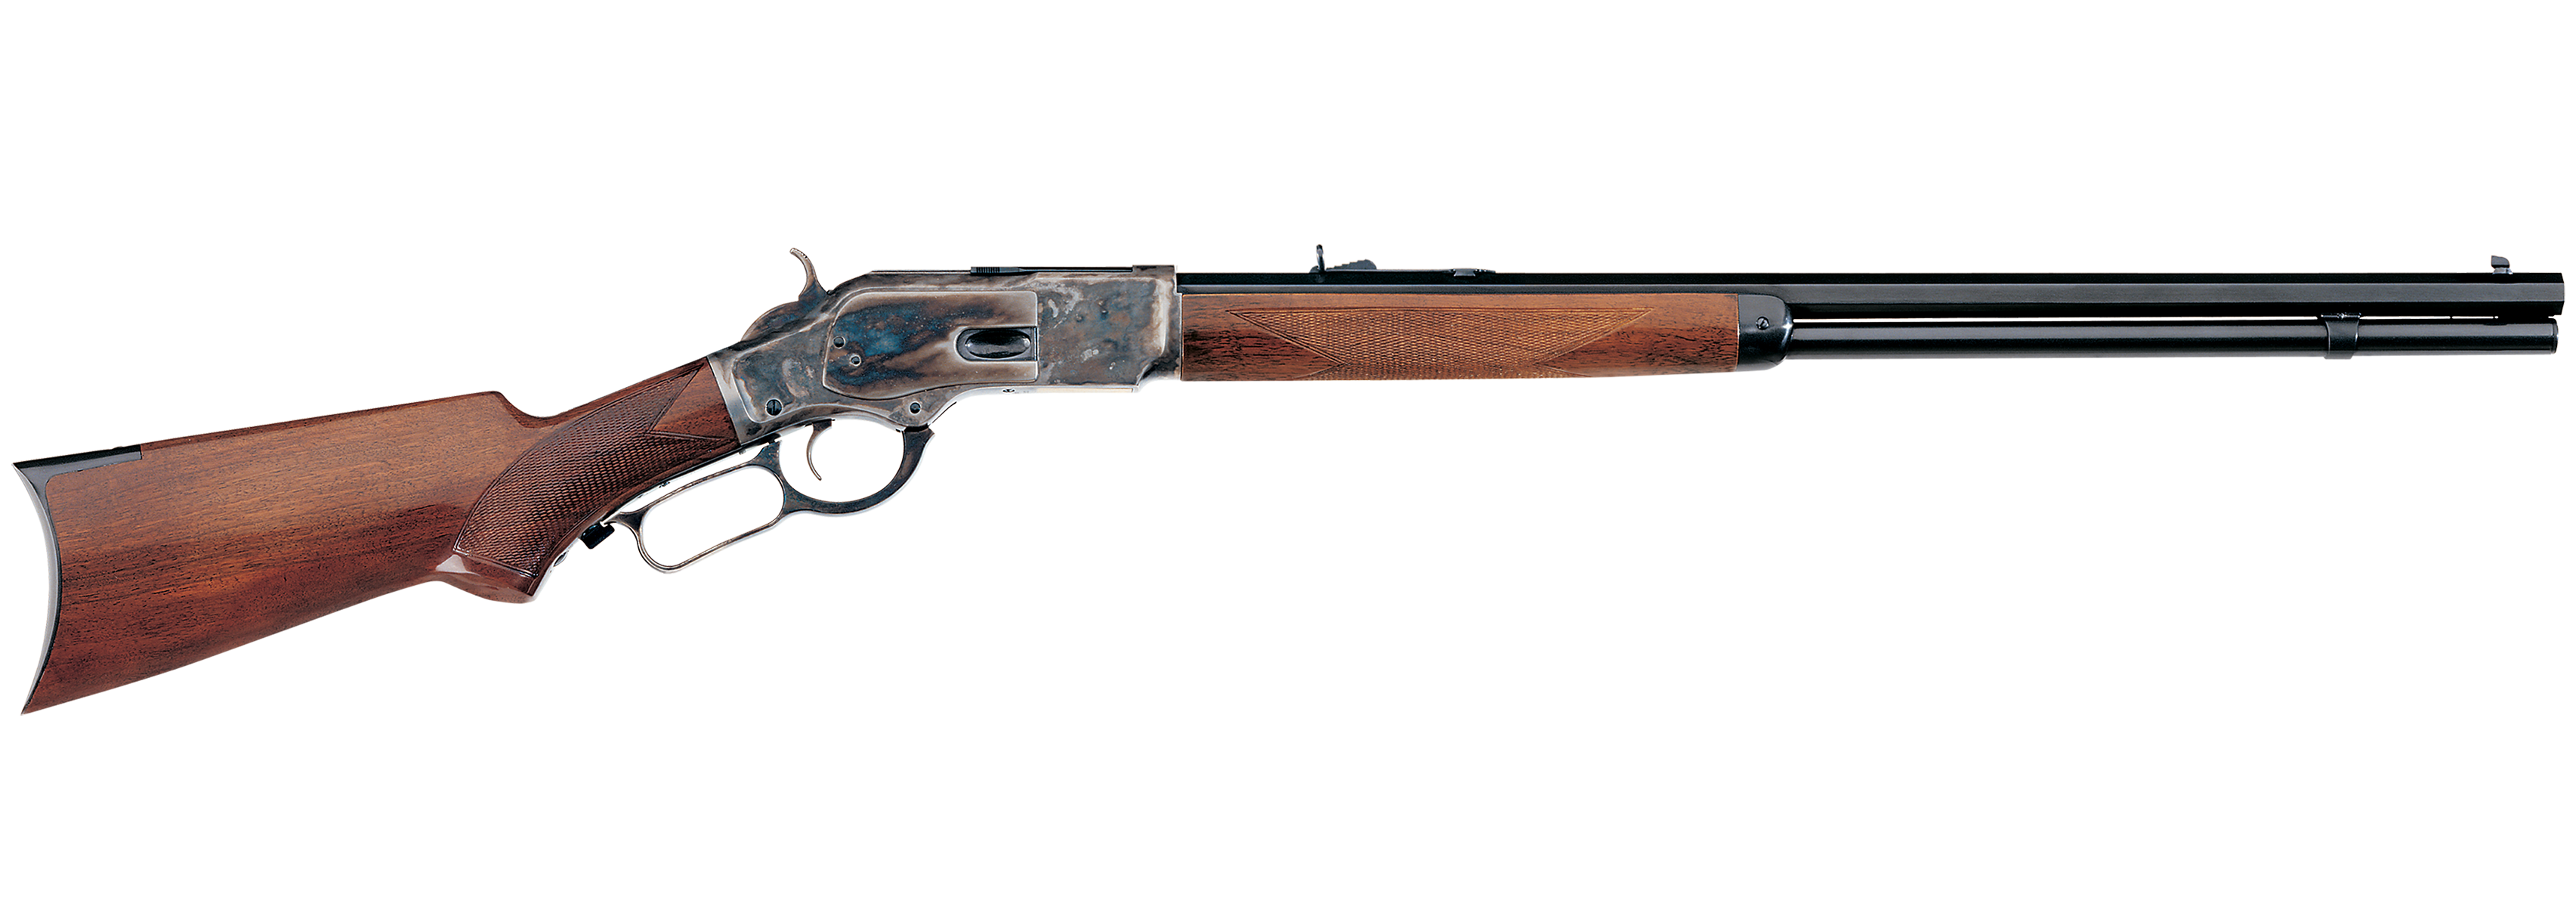 Transparent rifle old. Cartridge rifles uberti and